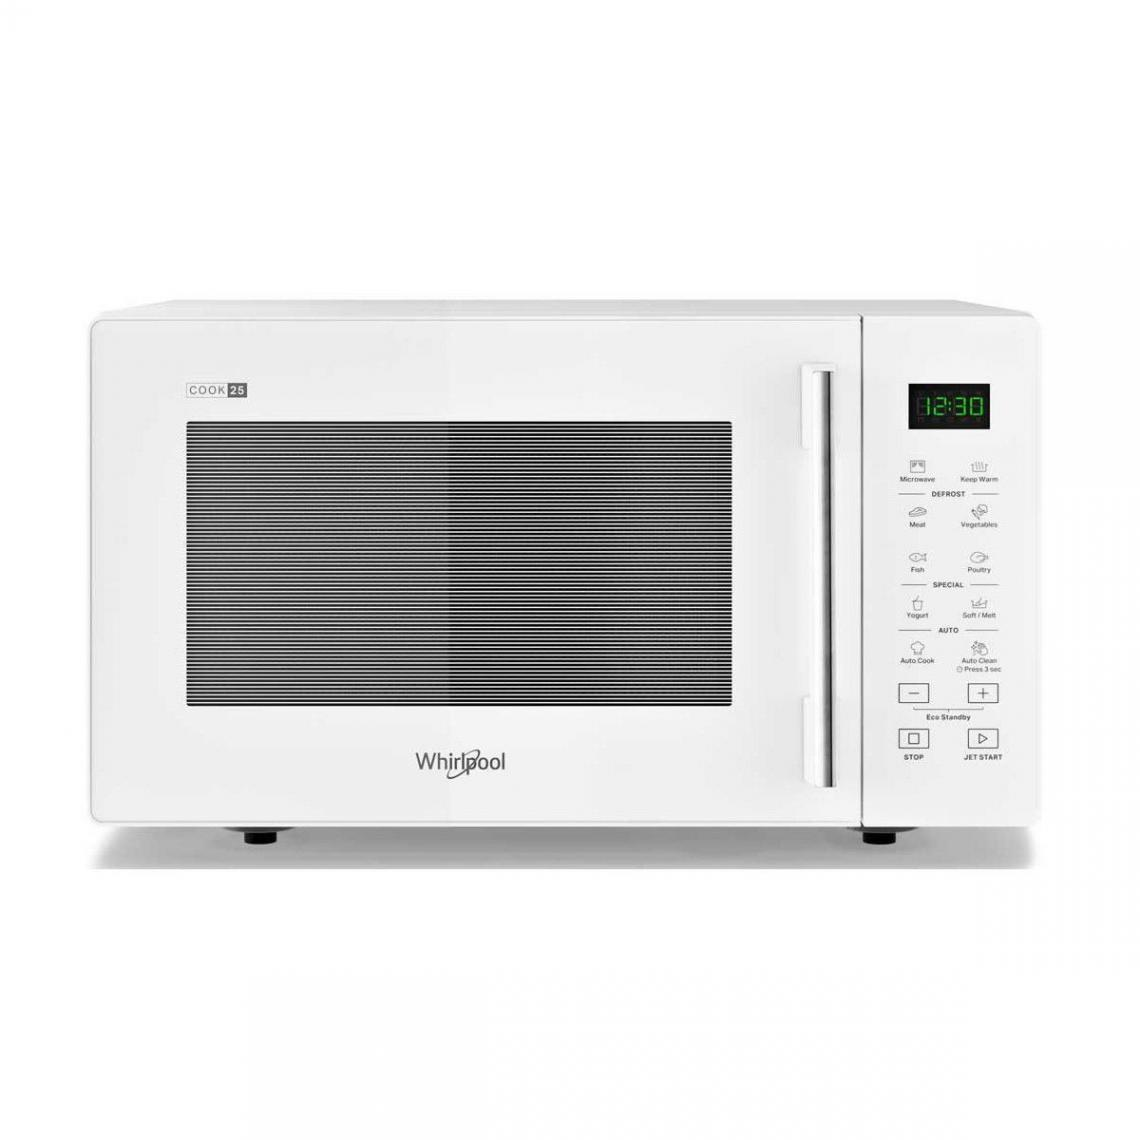 whirlpool Micro-ondes Pose Libre 25l Whirlpool 900w 28.1cm, 1121591